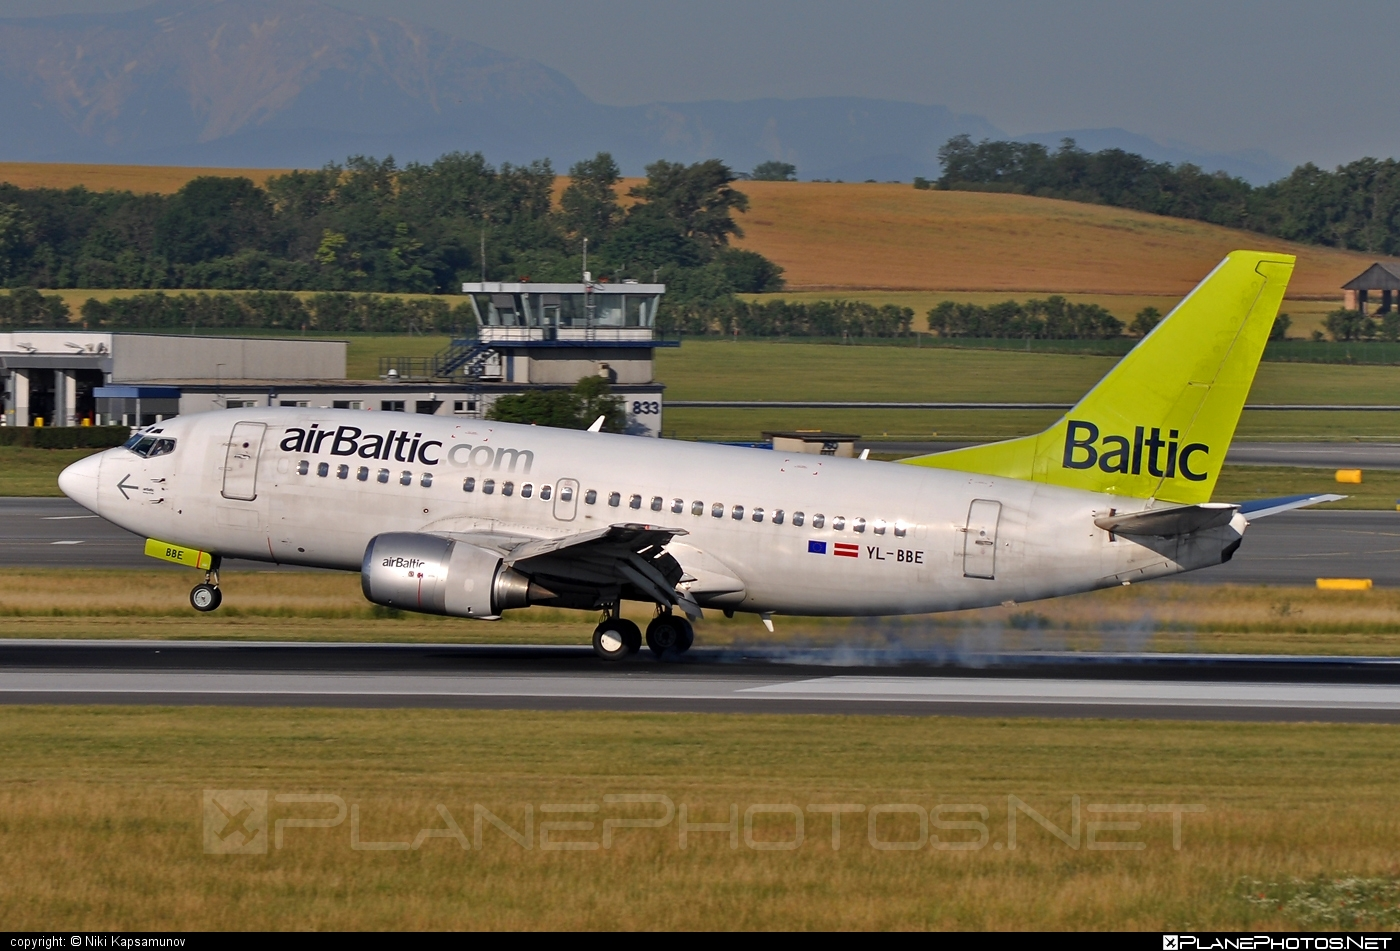 Boeing 737-500 - YL-BBE operated by Air Baltic #airbaltic #b737 #boeing #boeing737